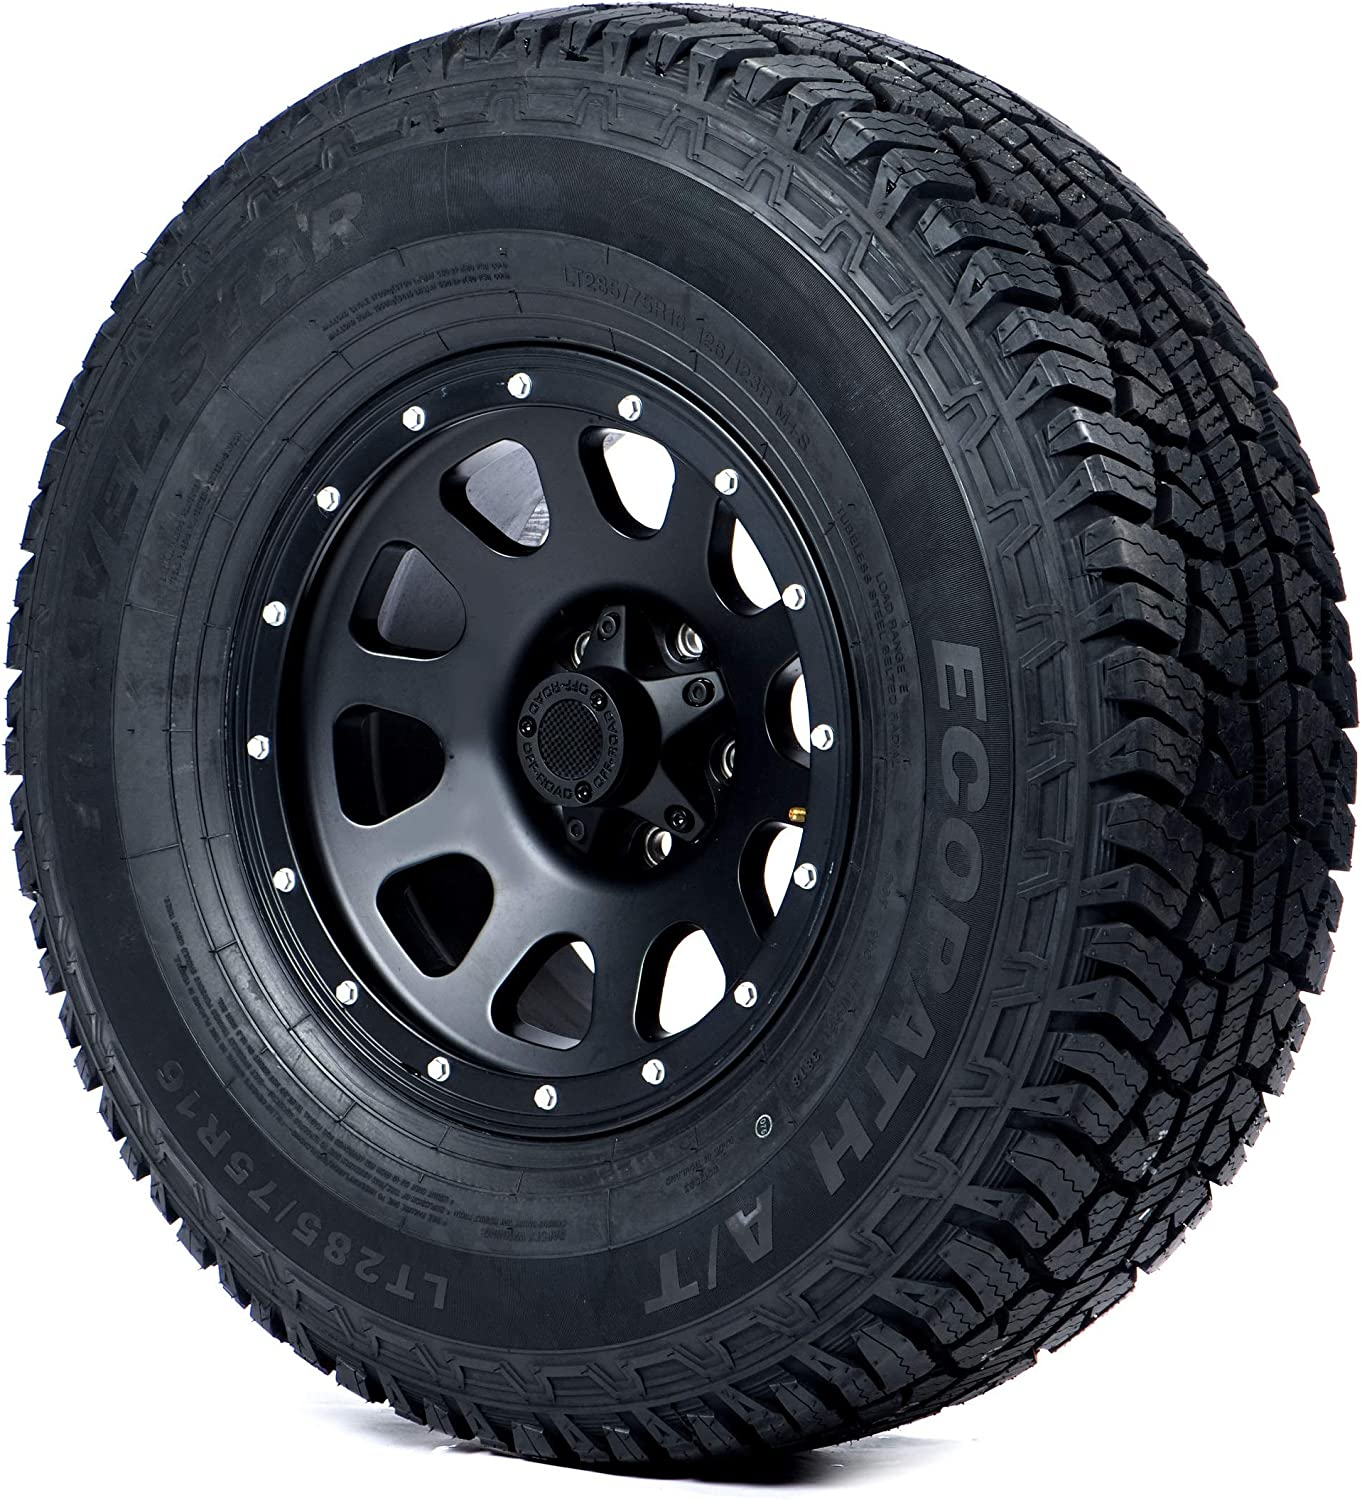 Travelstar EcoPath A/T All- Terrain Radial Tire-LT245/75R17 121S 10-ply